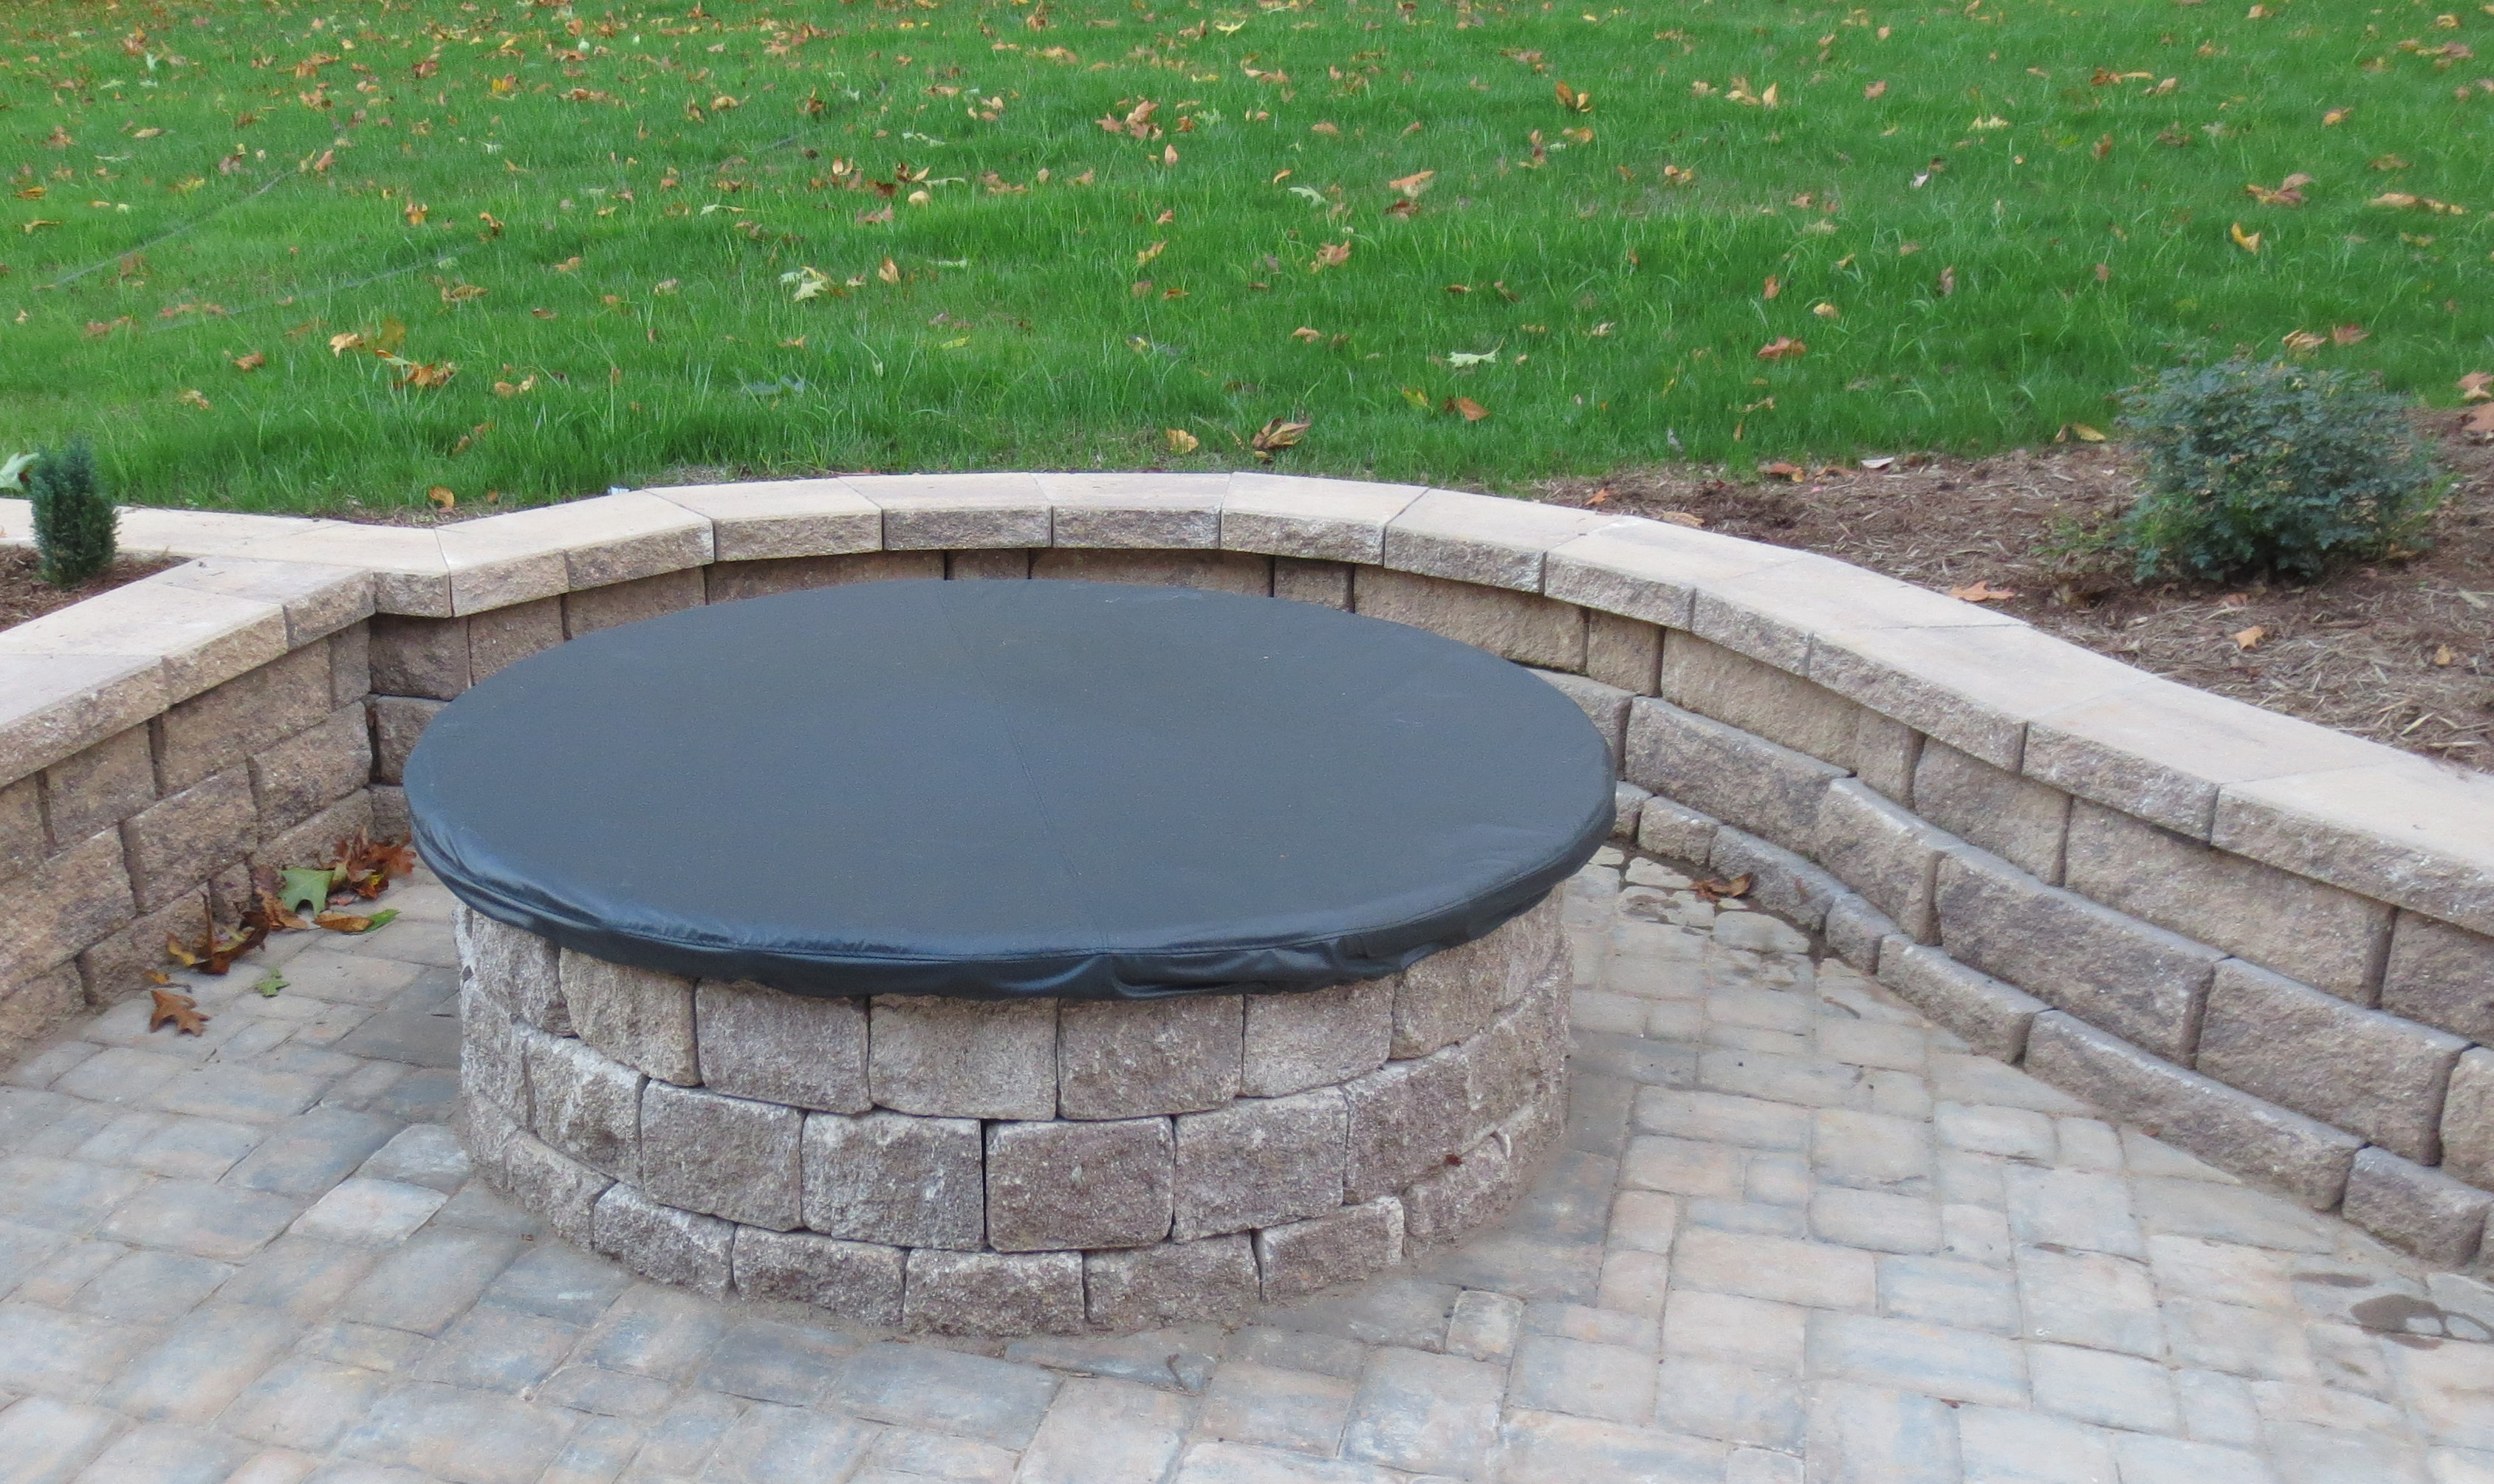 Fire Pit Cover Equip Home Fitness in sizing 3377 X 2010